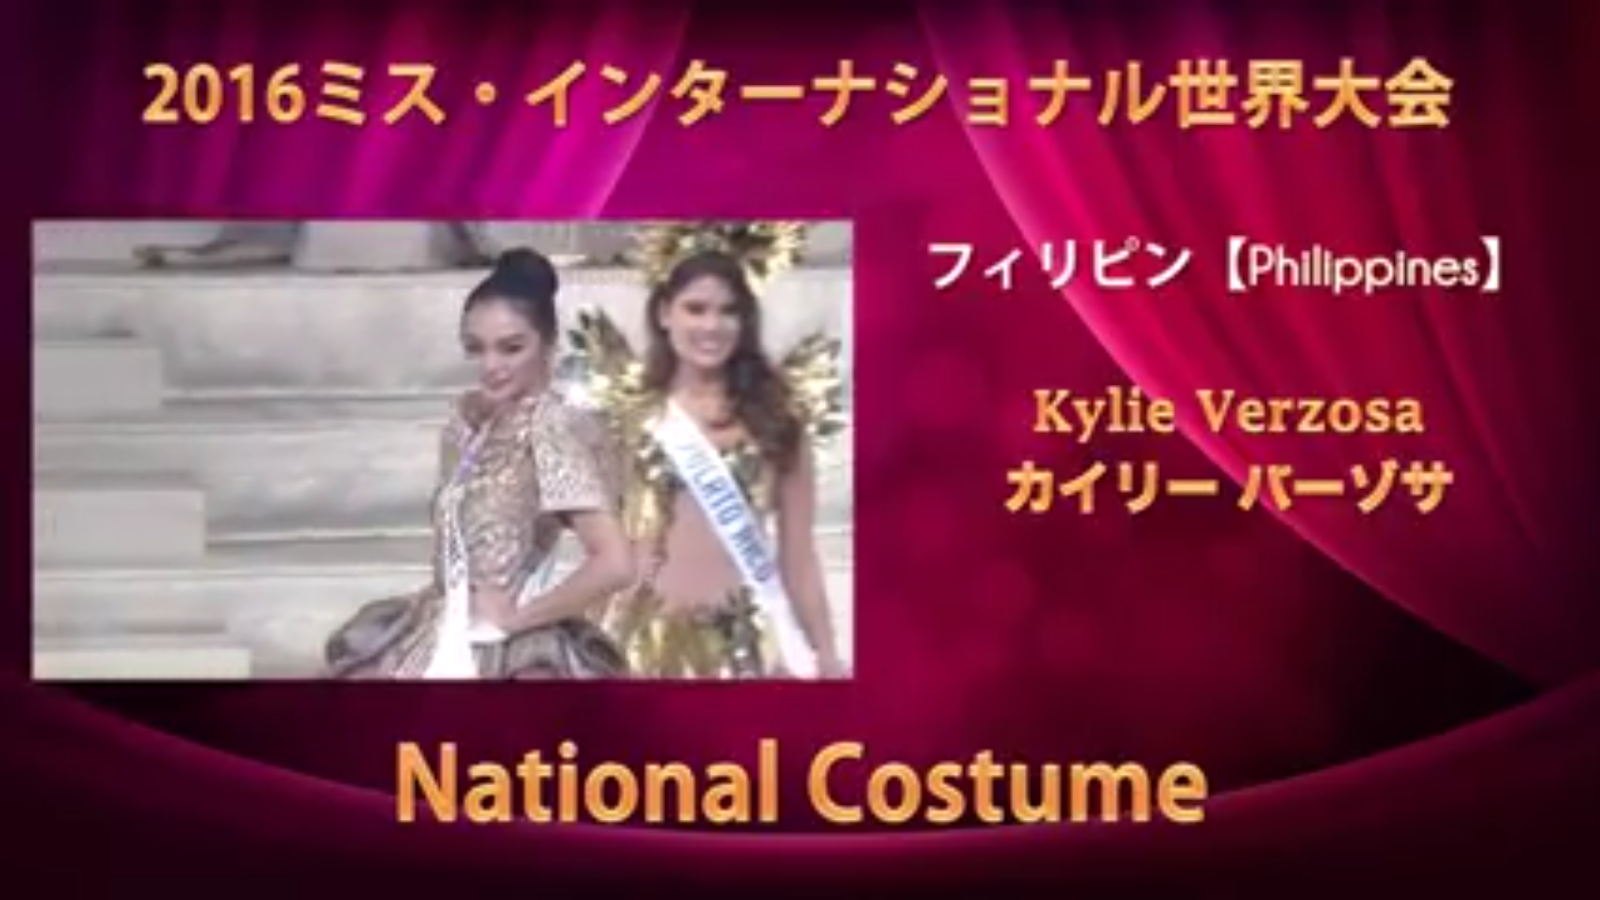 Miss International 2016 Live Streaming updates of results